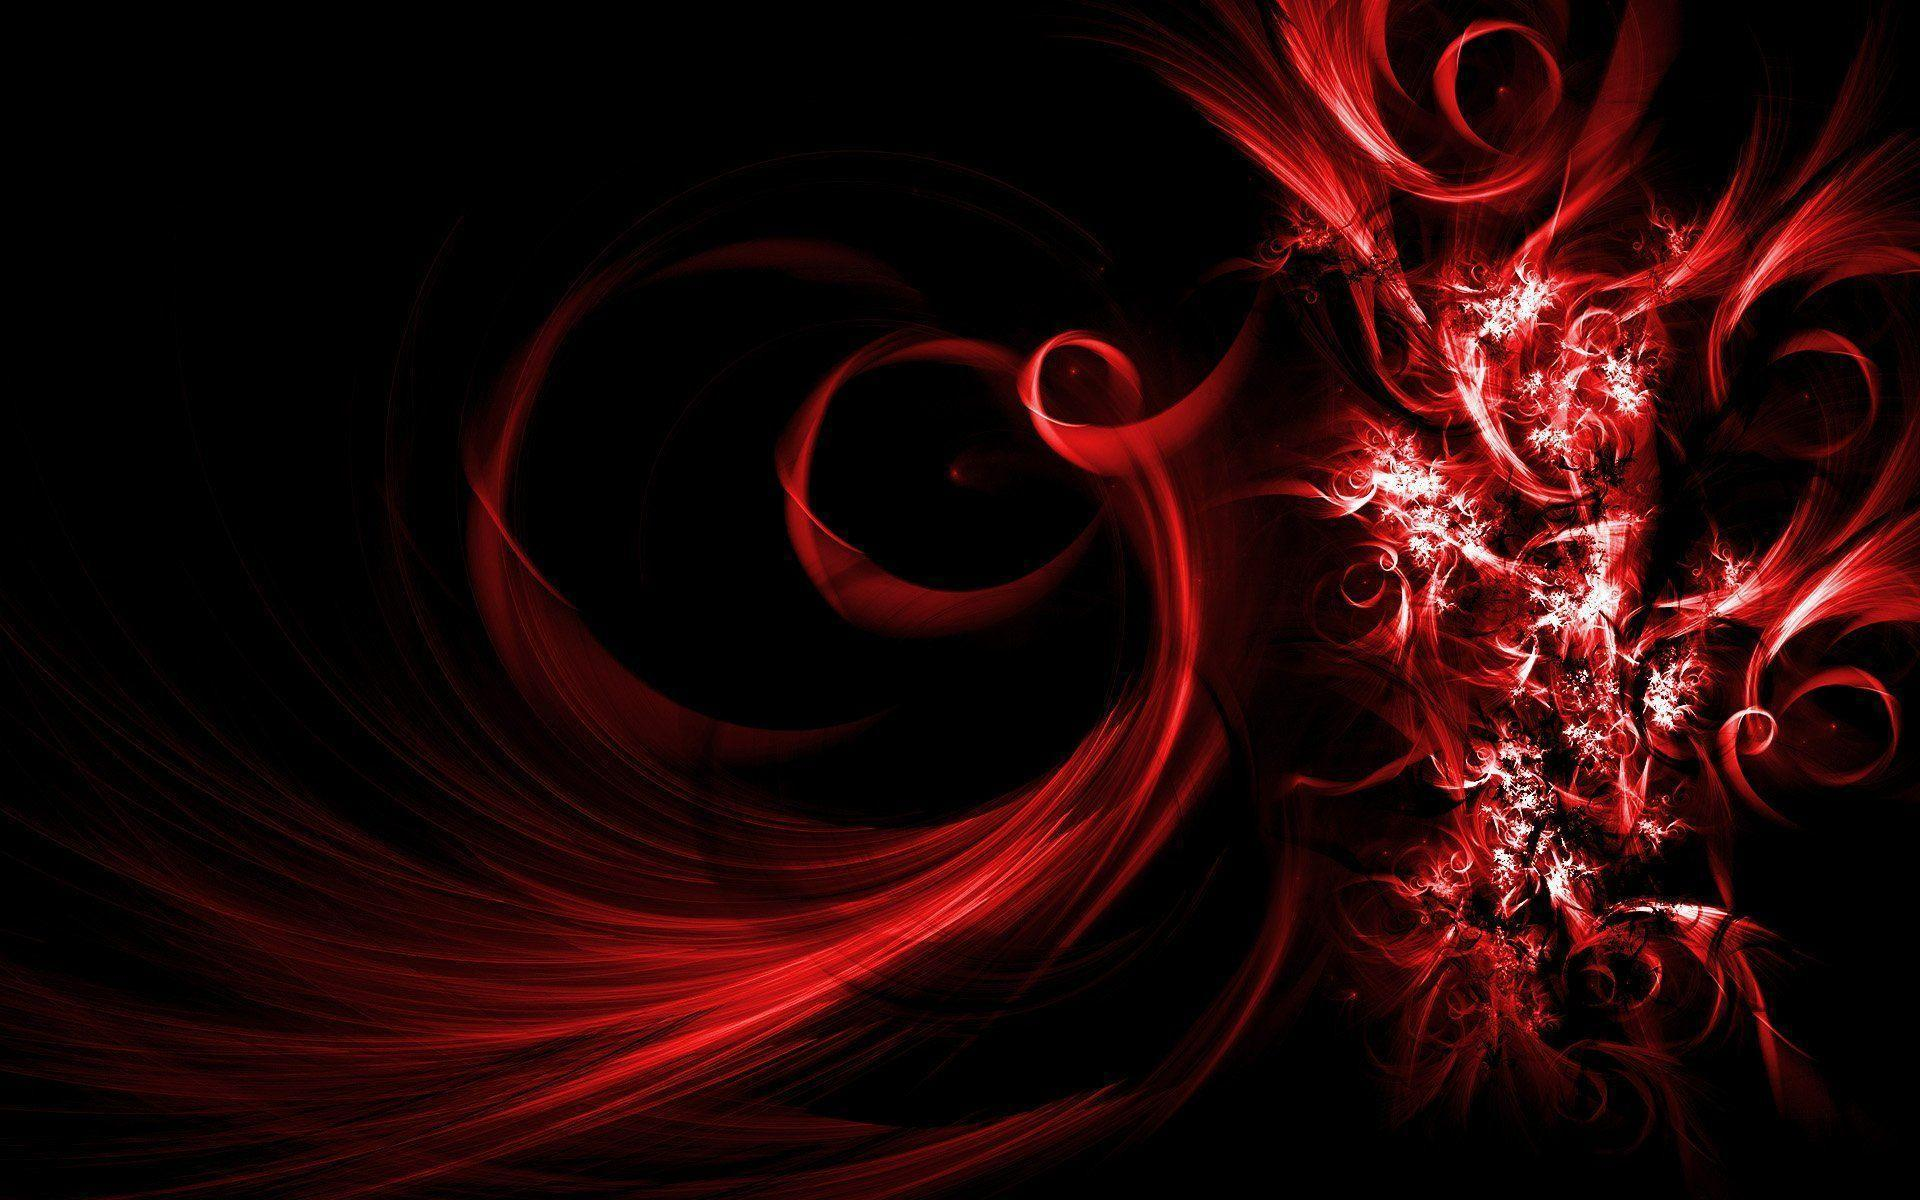 Red 6k Wallpapers Top Free Red 6k Backgrounds Wallpaperaccess